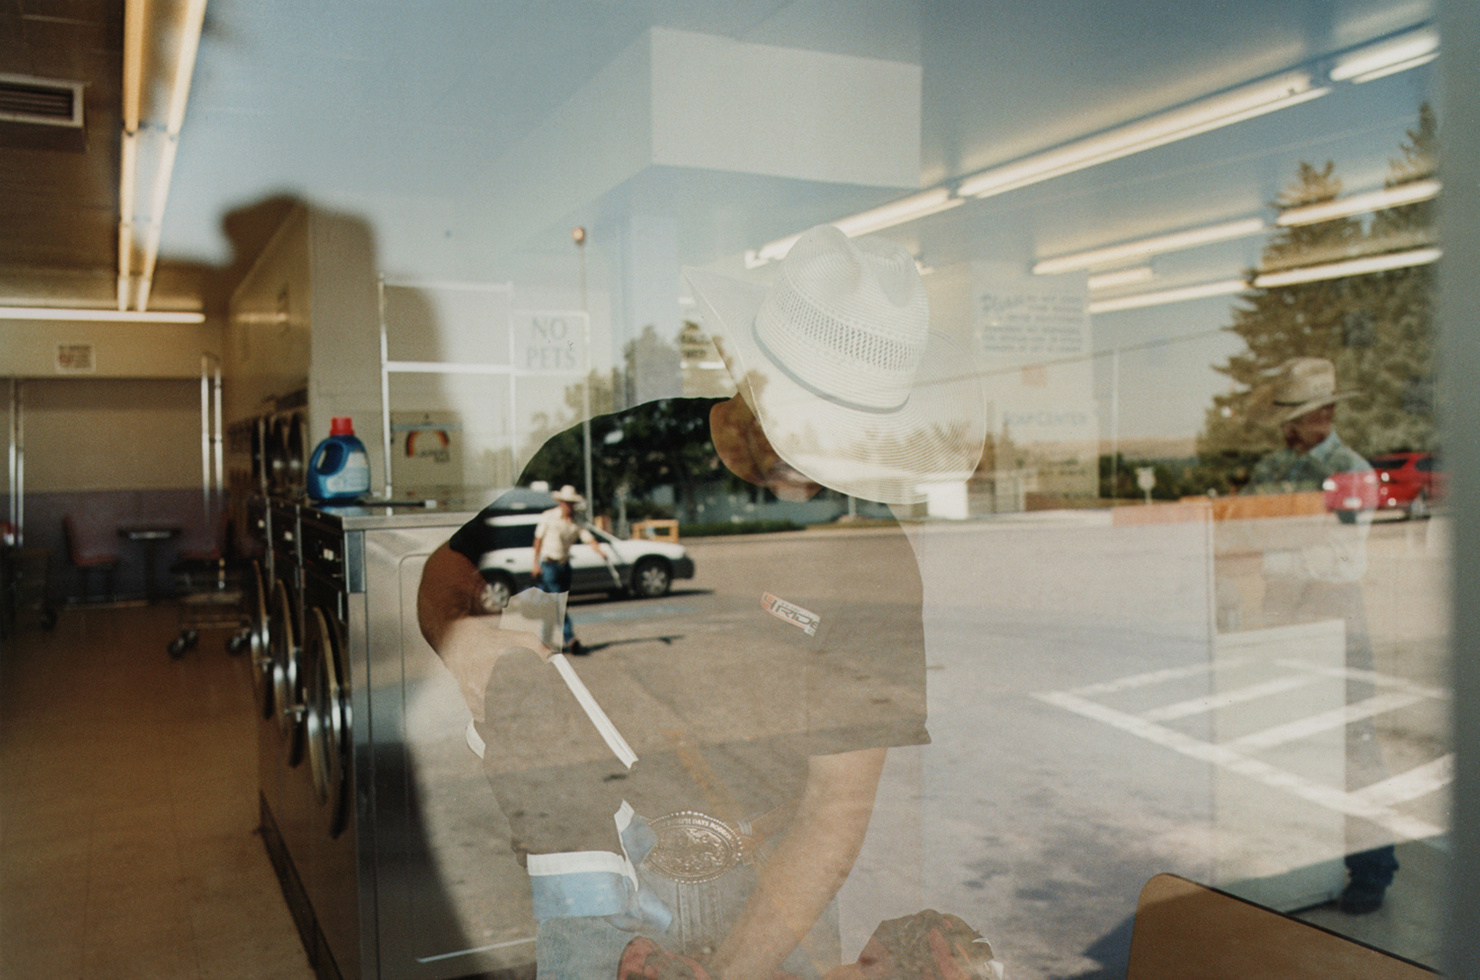 seven year photographic project documents small town life in the preferring to shoot film richmond primarily used a large format camera for last best hiding place first orienting himself by exploring a town and